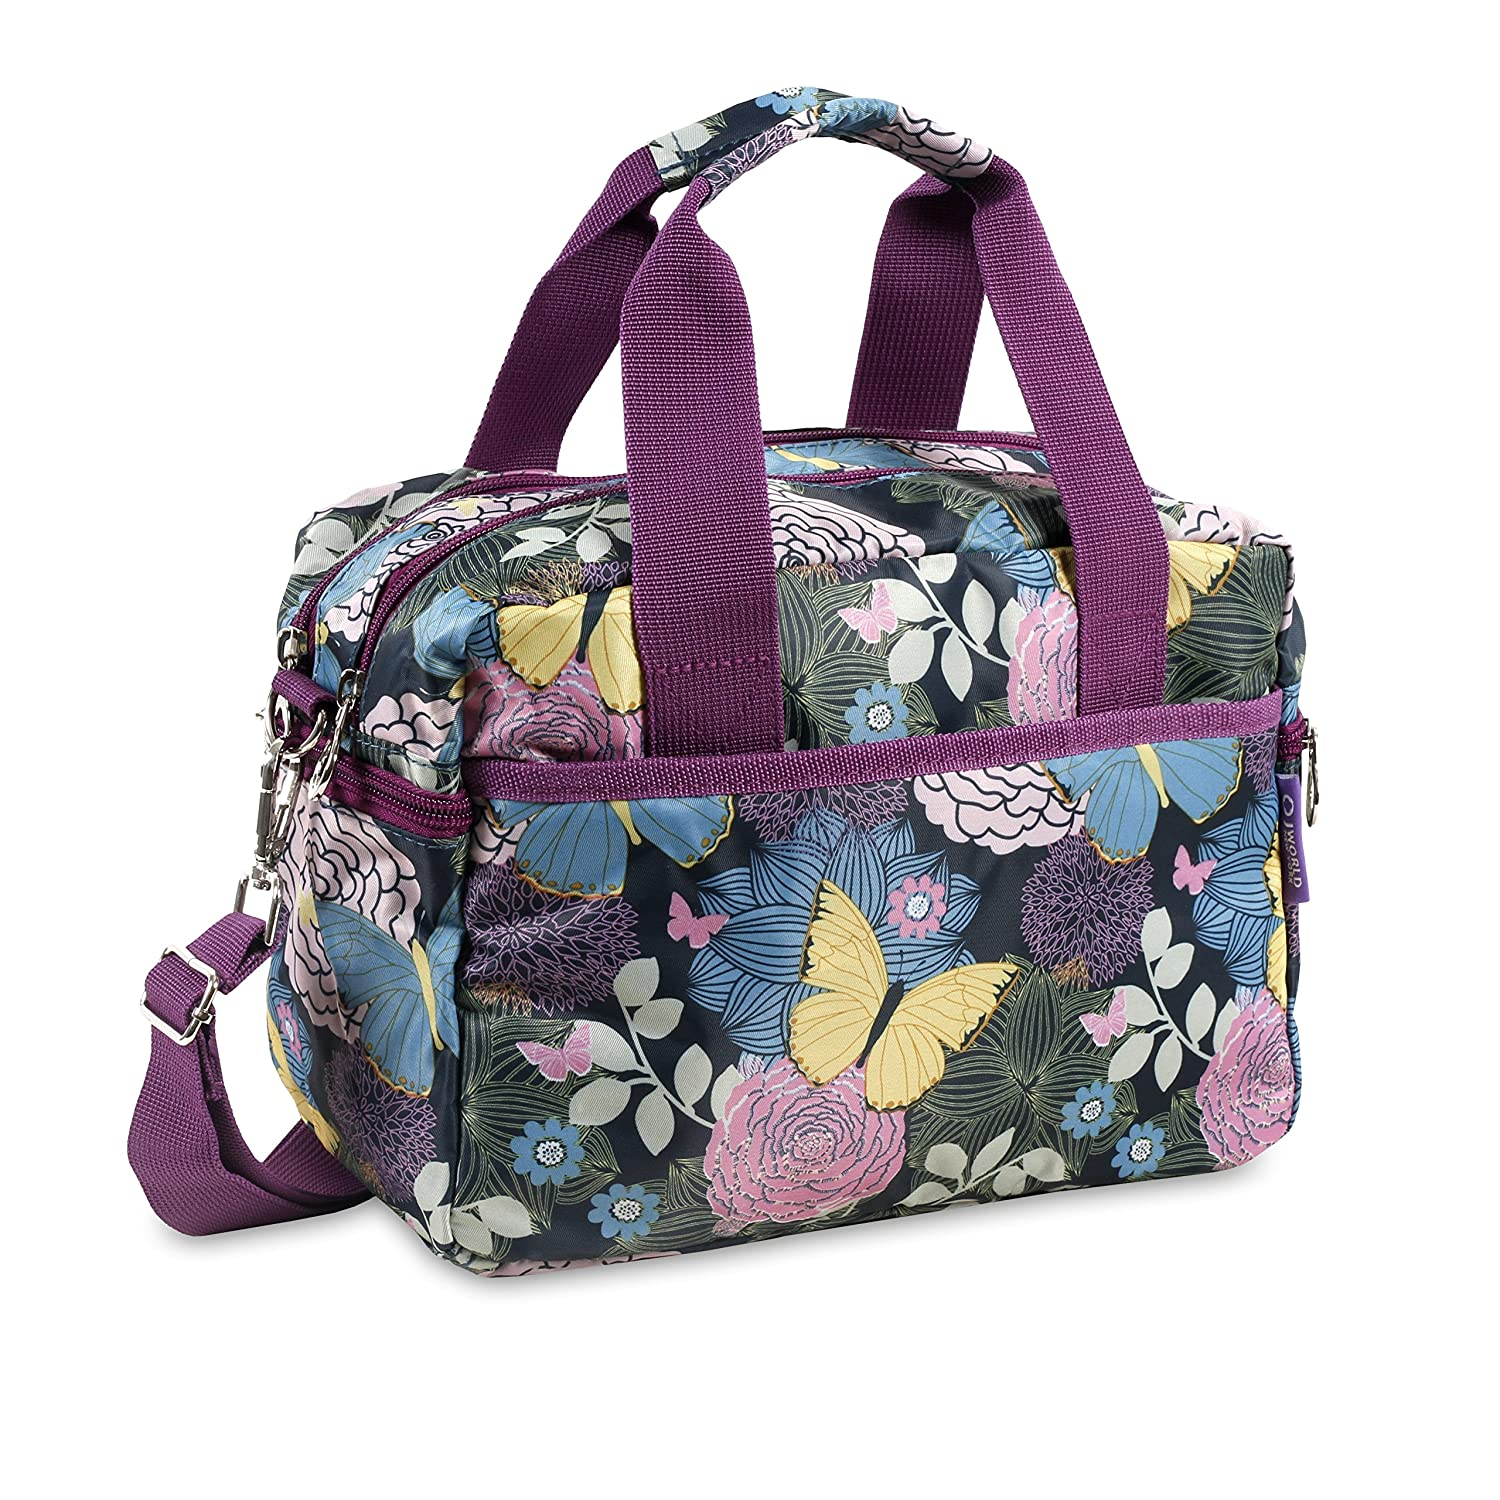 J World New York Aby Bag Travel Tote